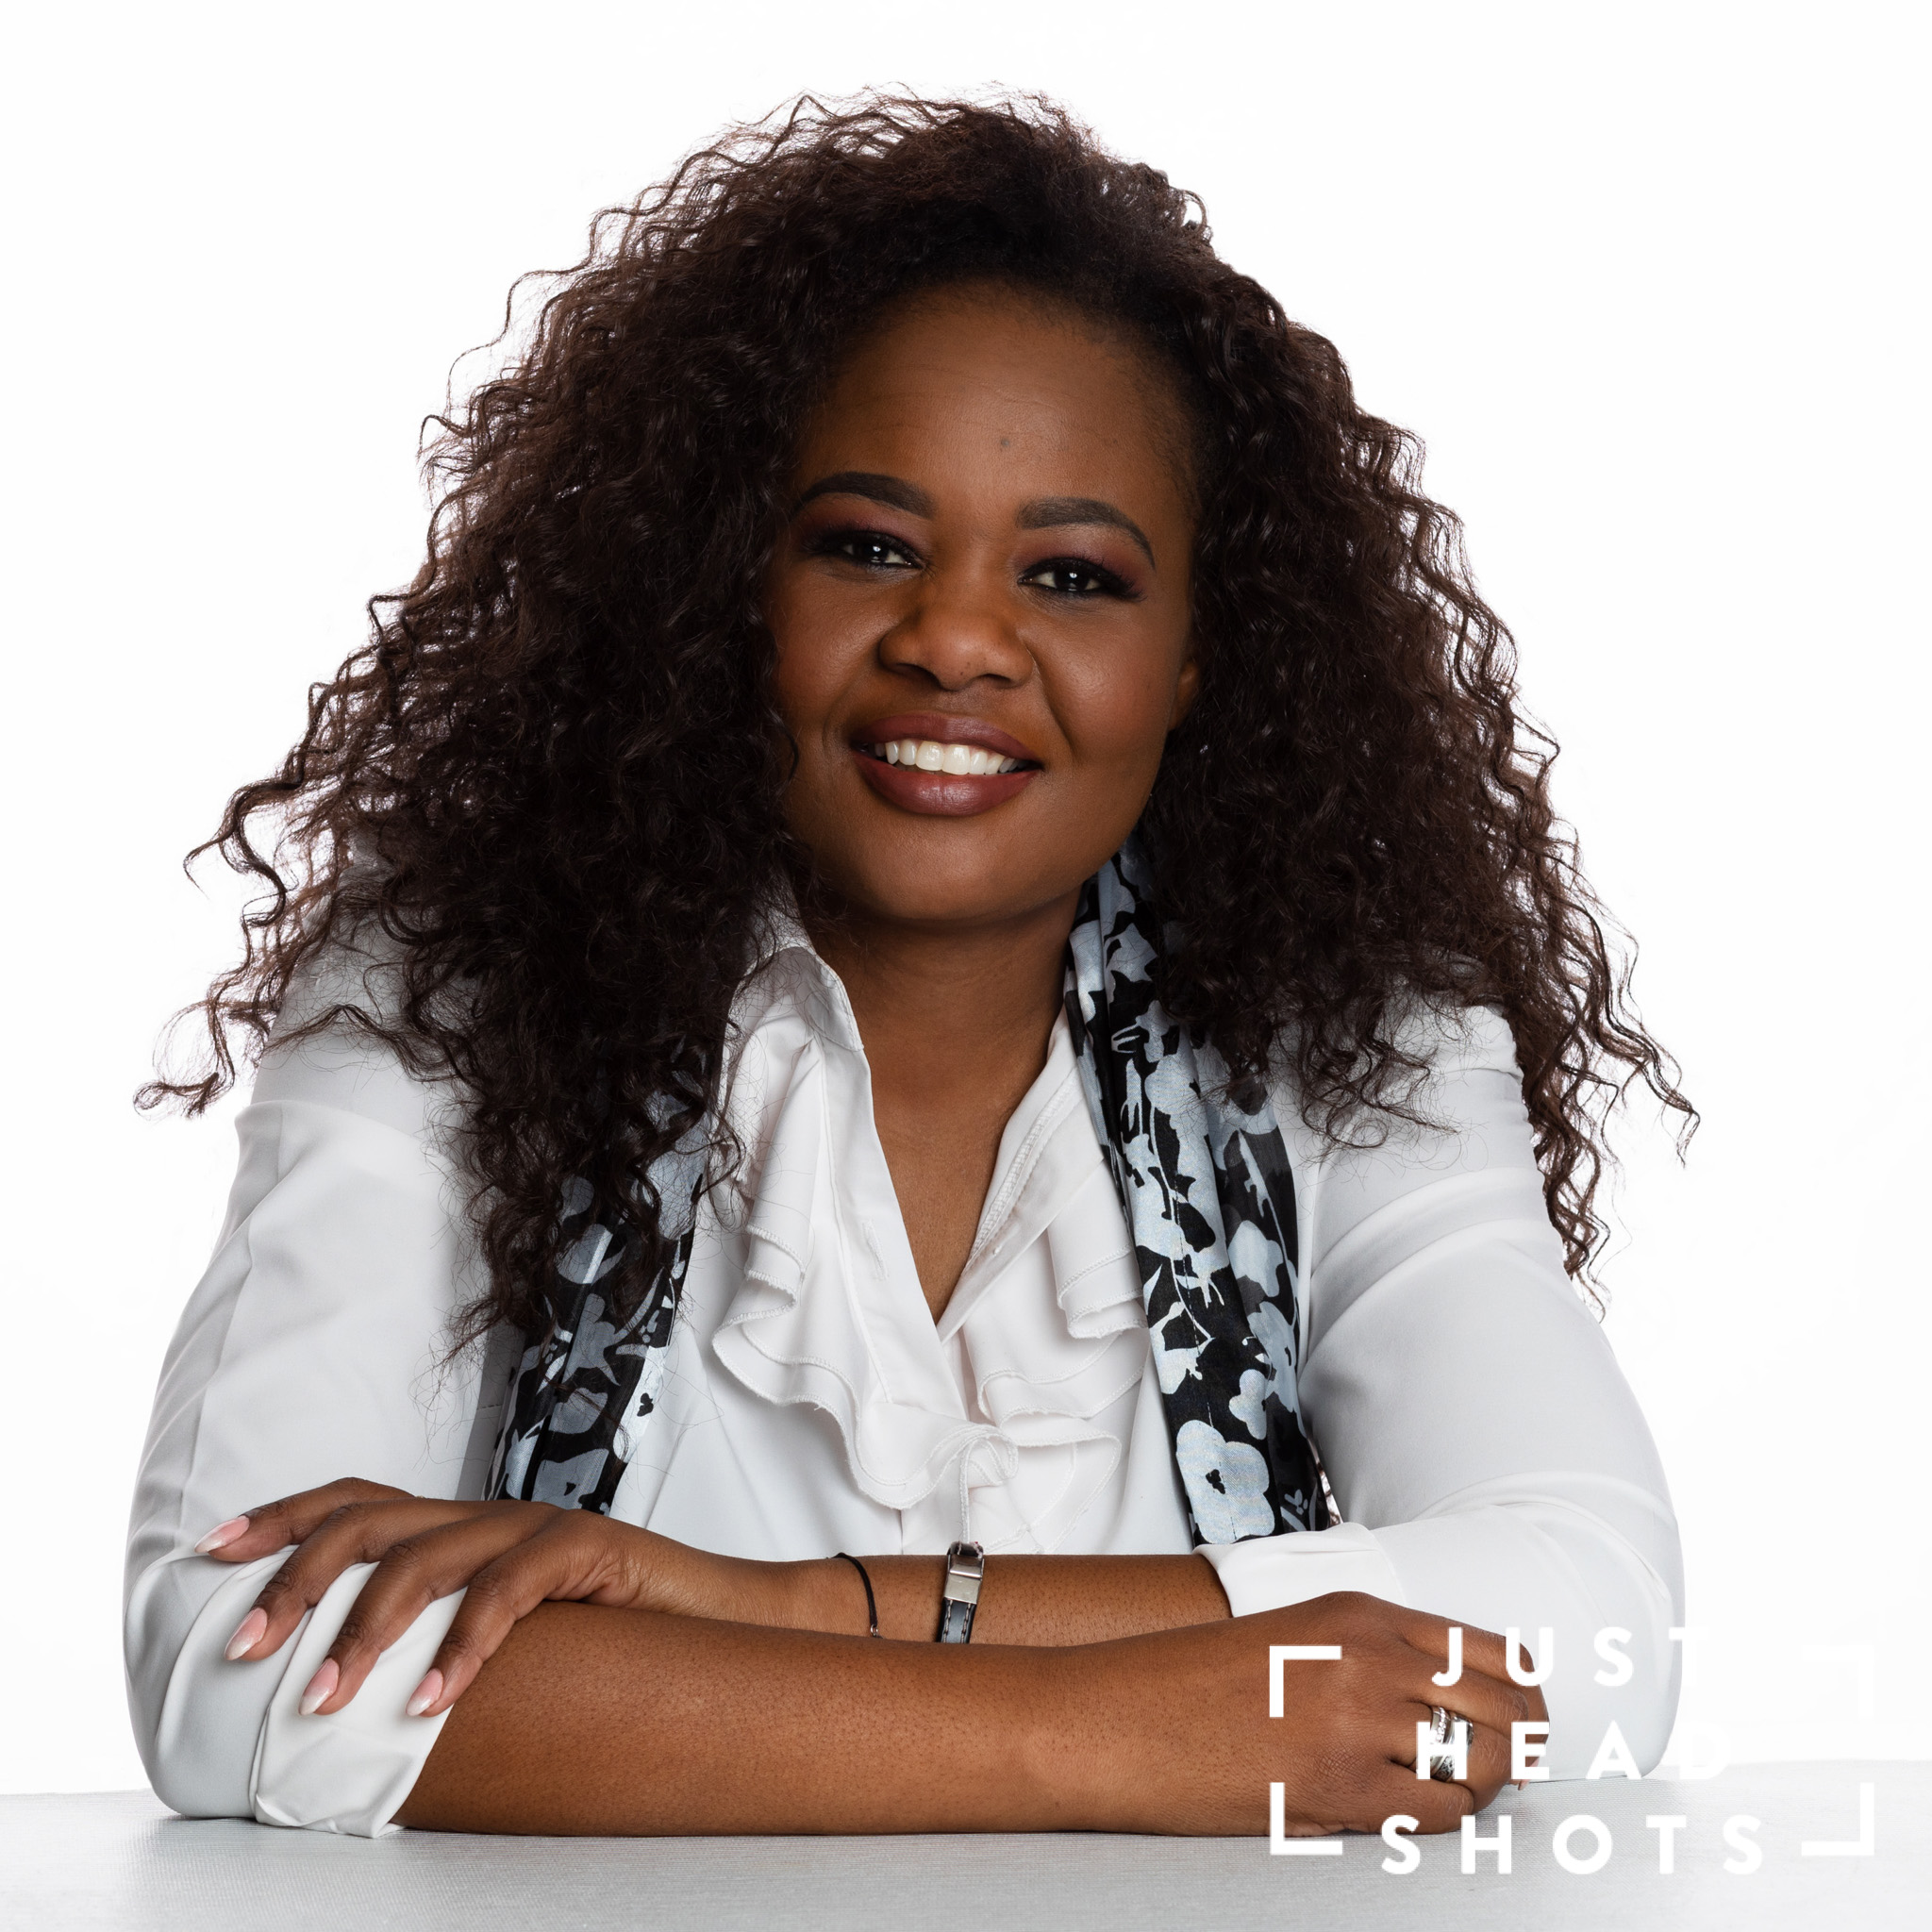 Professional headshot of a black woman wearing a white blouse and scarf, photographed with Profoto studio flash on white background with shoulders angled directly to the camera with arms folded and leaning on a table.